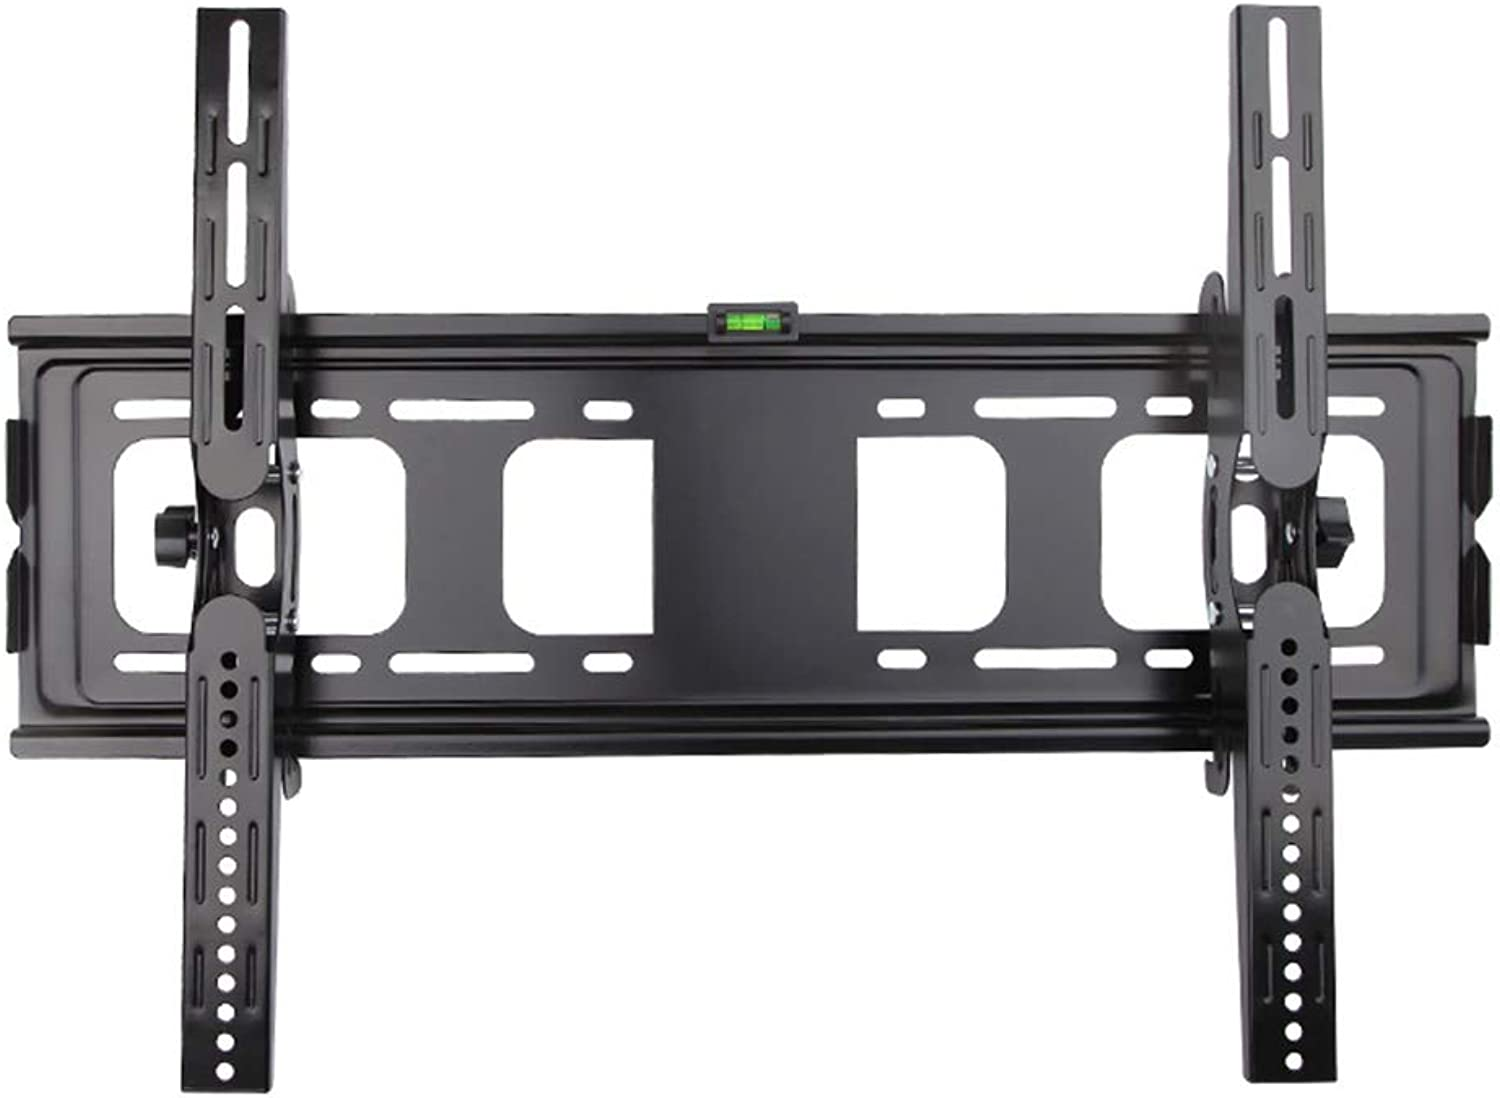 TV Wall Bracket Mount for Most 3270 inch LED LCD Plasma & Curved Screens Monitor, Max VESA 700x500mm up to 50 kg with Full Motion Tilt and Swivel Cantilever Arm